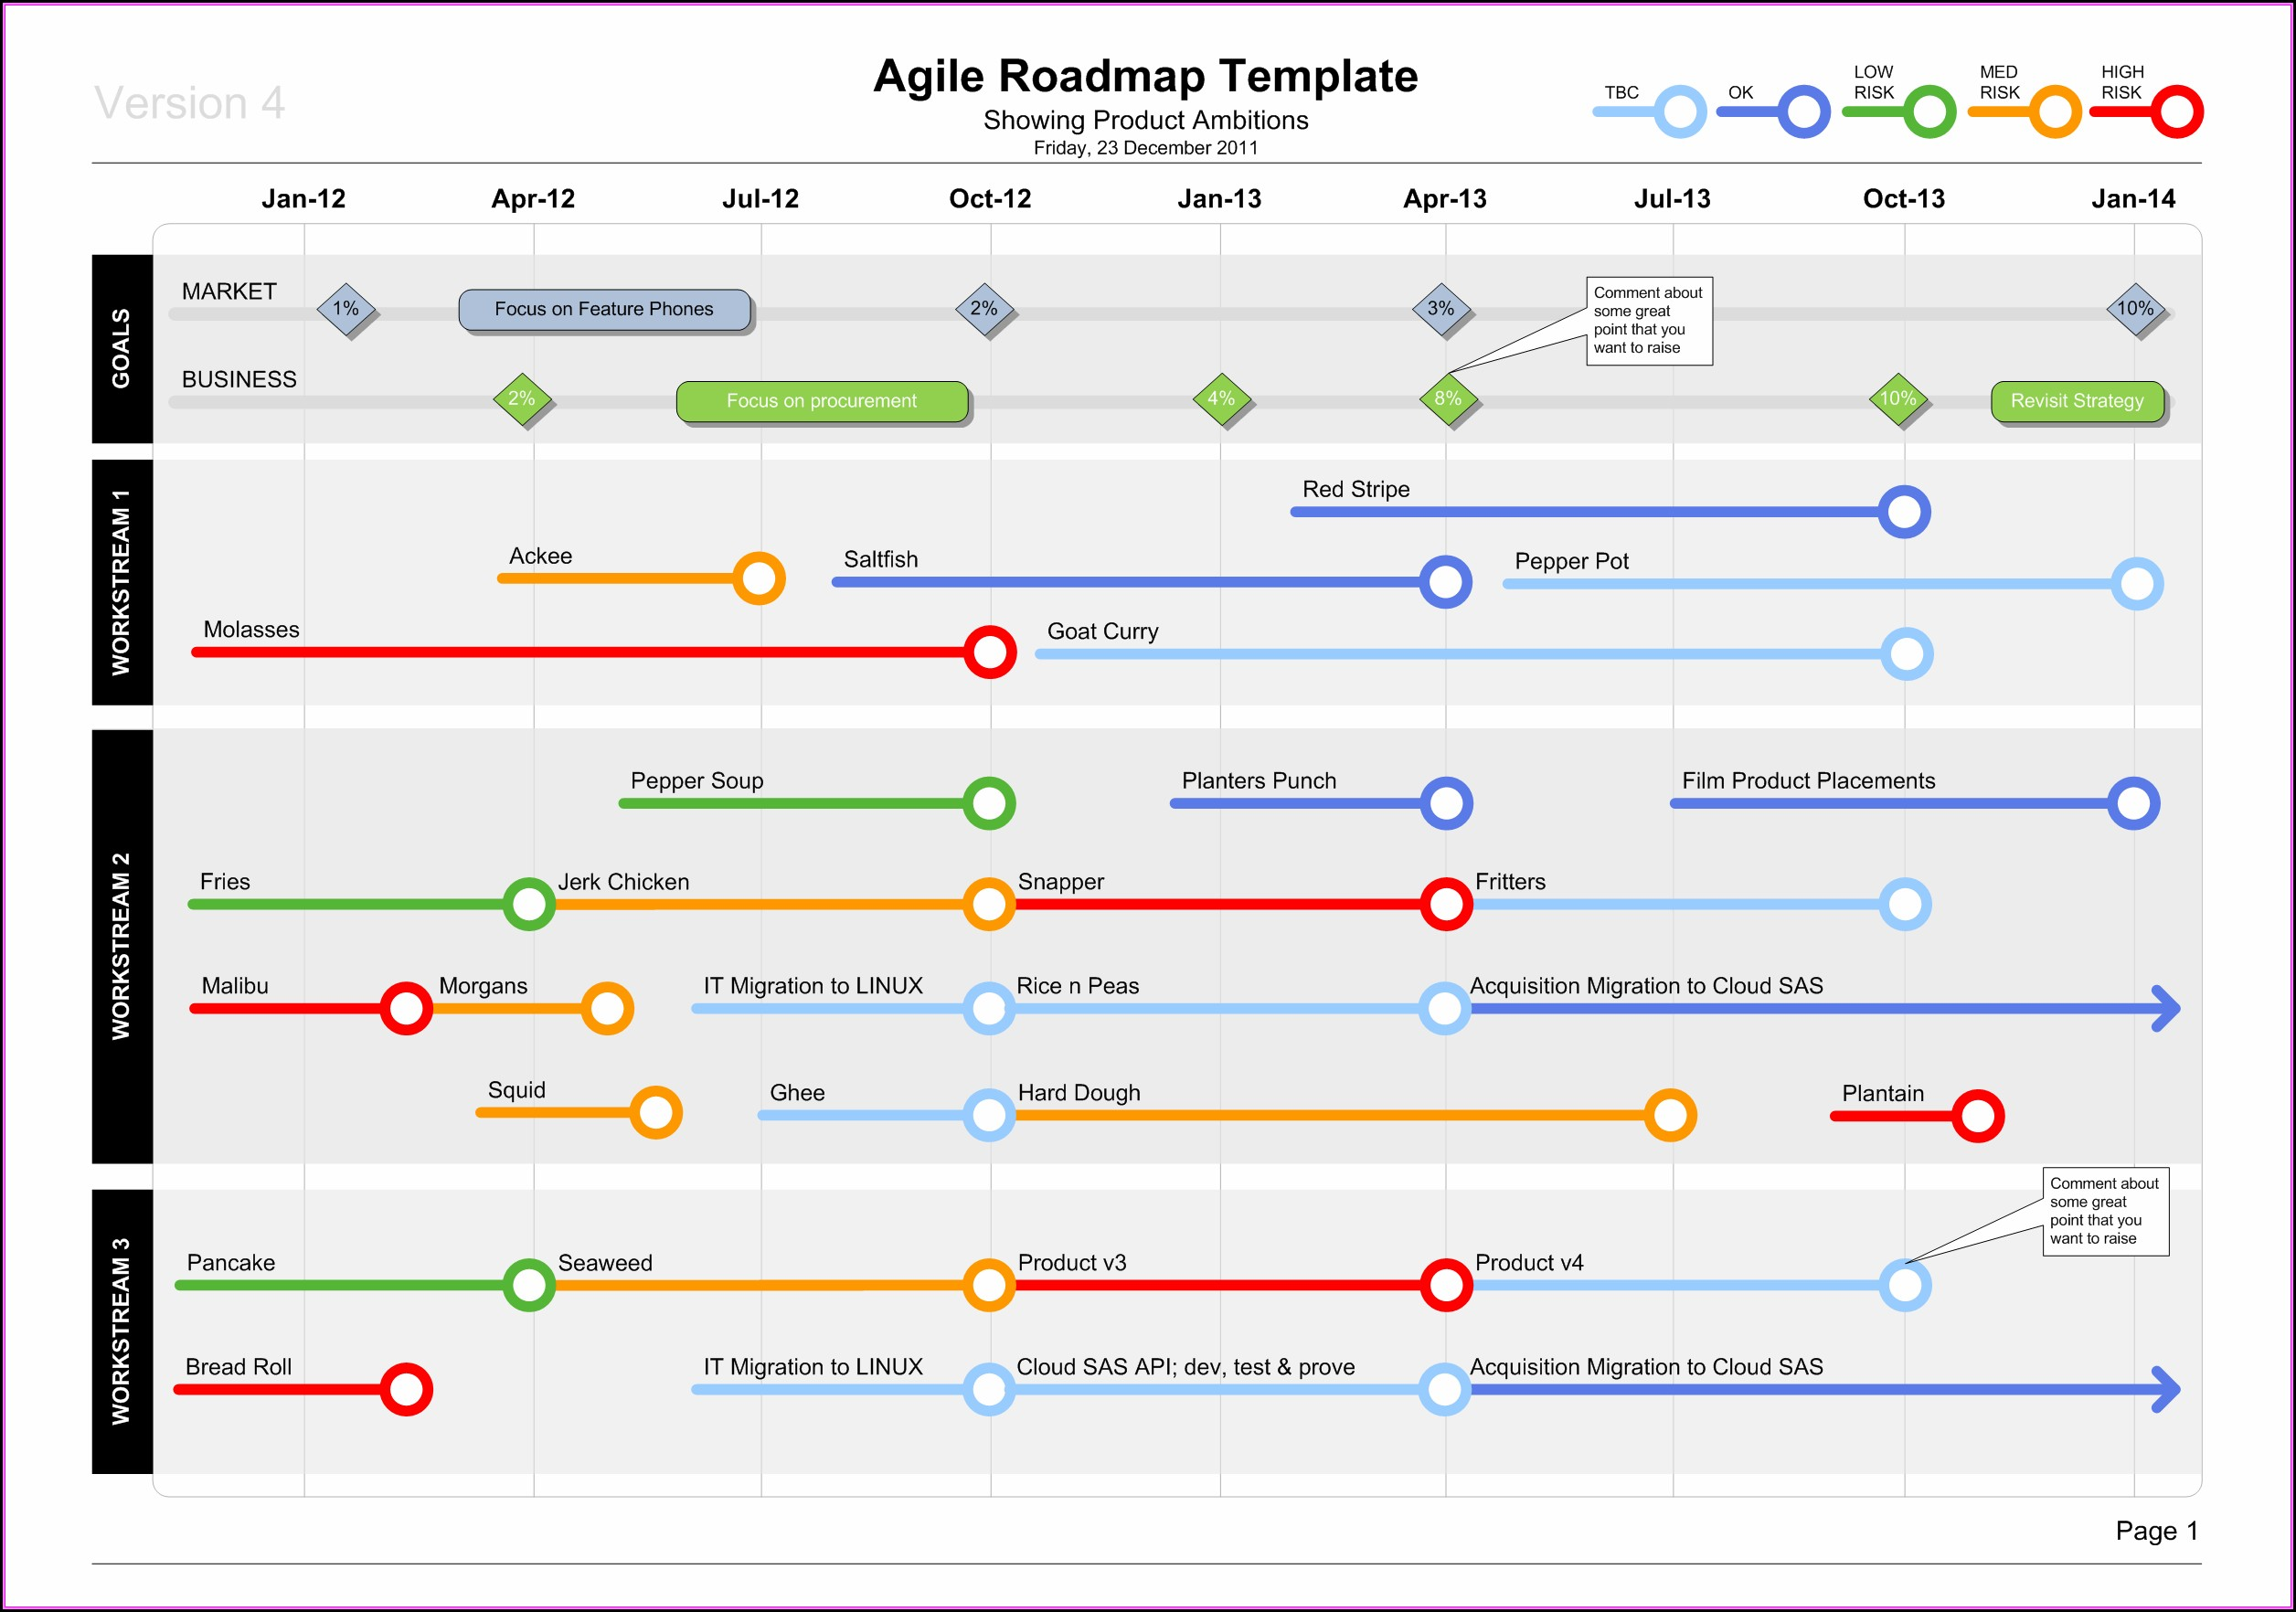 Agile Roadmap Template Visio